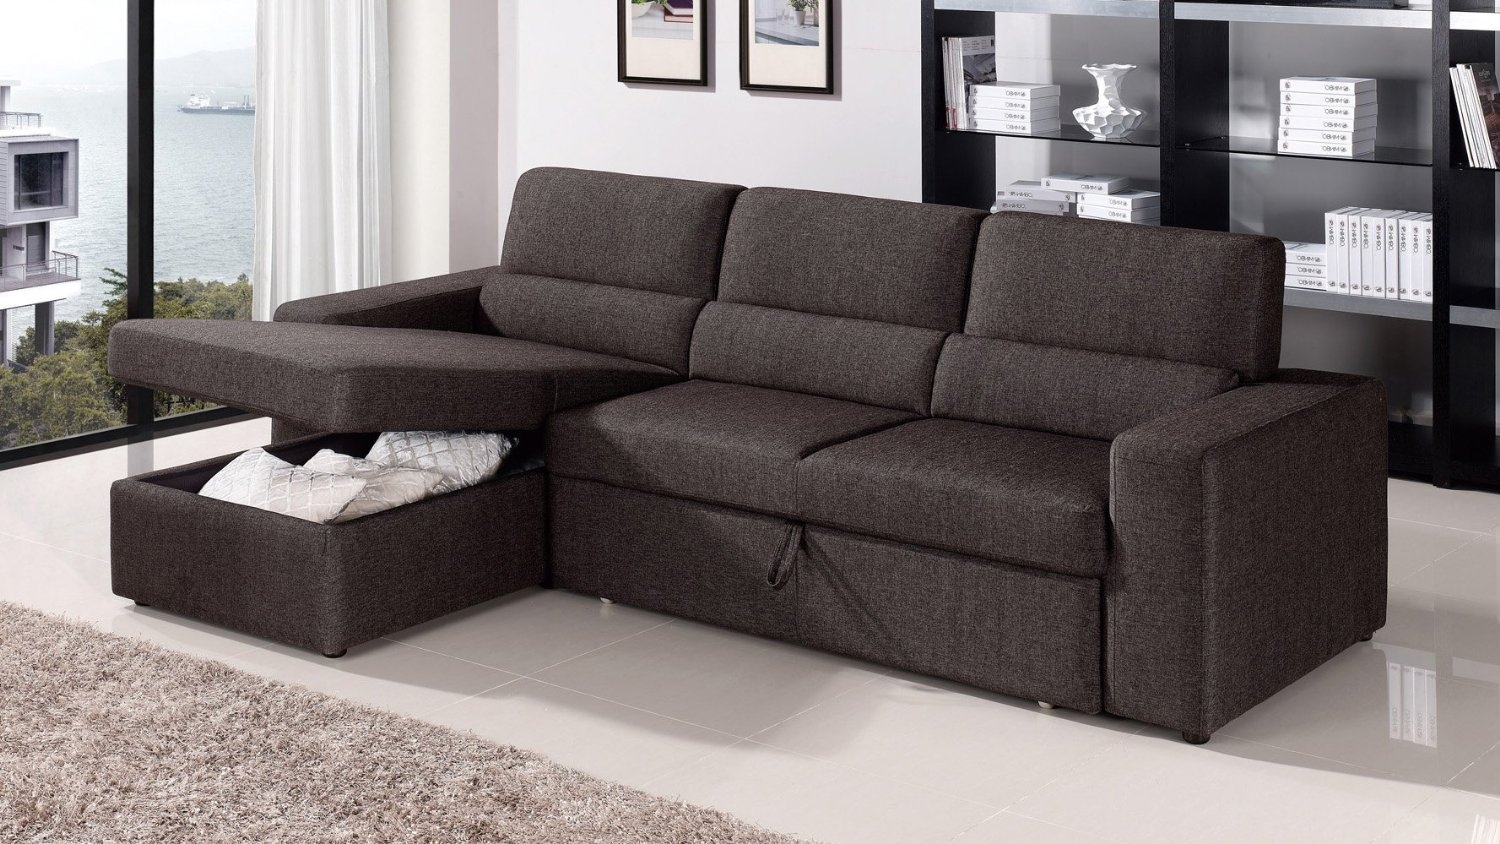 Popular Big Sofas Sectionals 42 On Microfiber Sectional Sofas With Within Big Sofas Sectionals (#7 of 12)